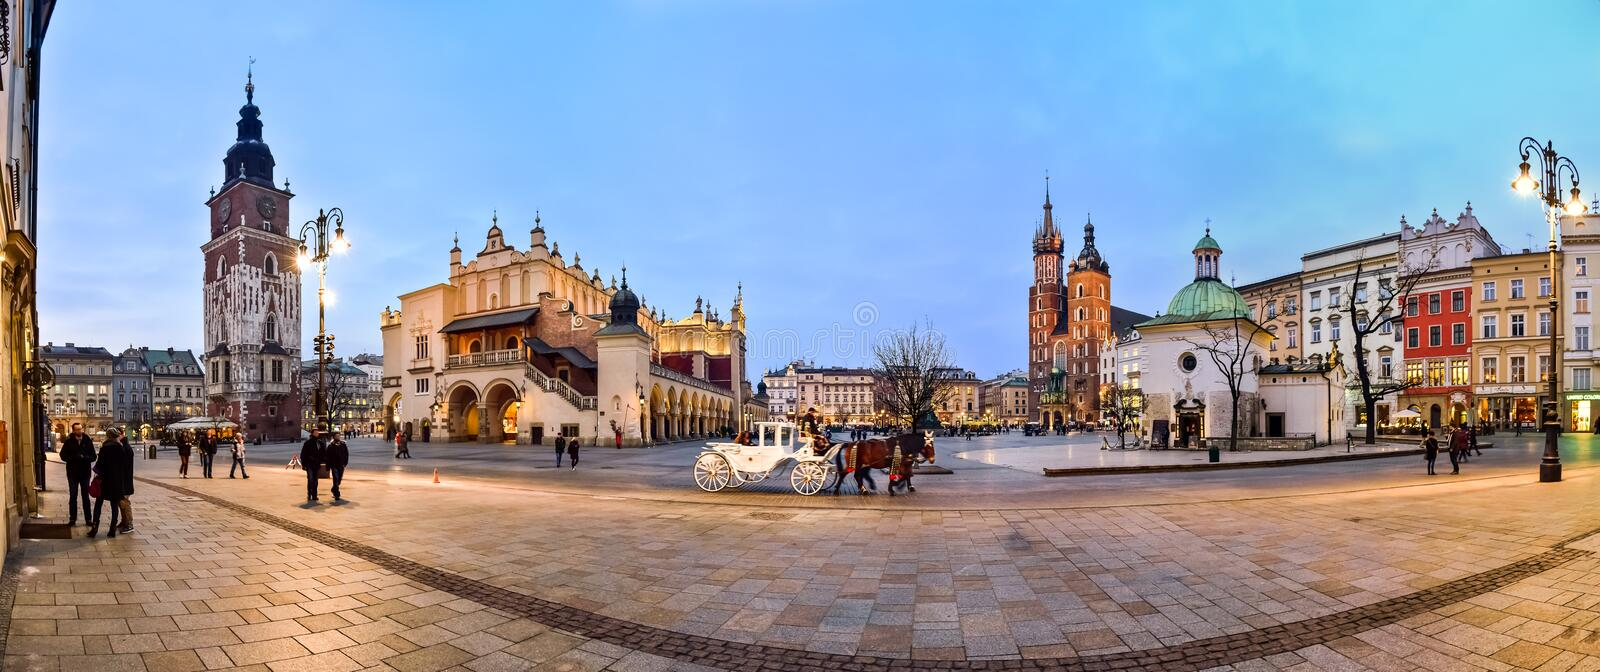 Krakow main square stock photography